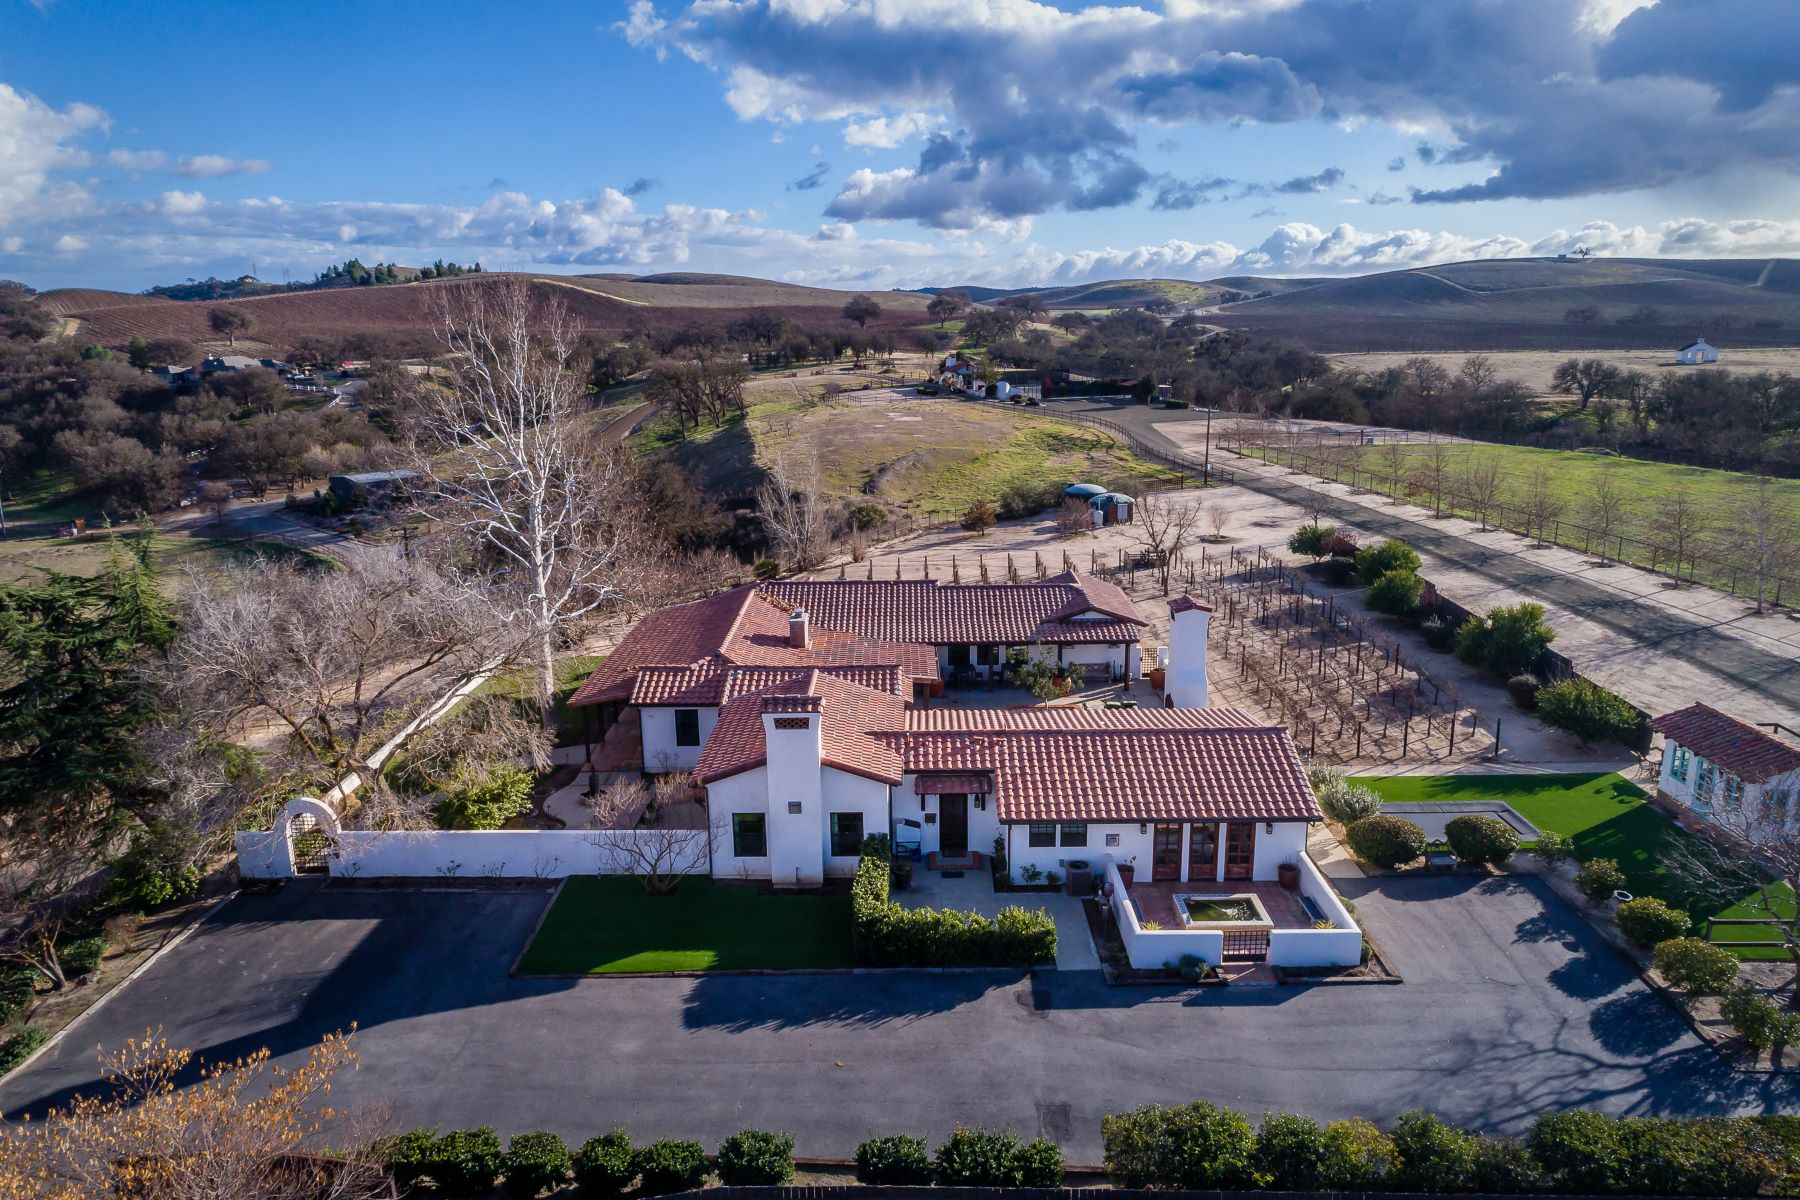 Single Family Home for Sale at Rioja Ranch 2225 Kit Fox Lane, Paso Robles, California, 93446 United States